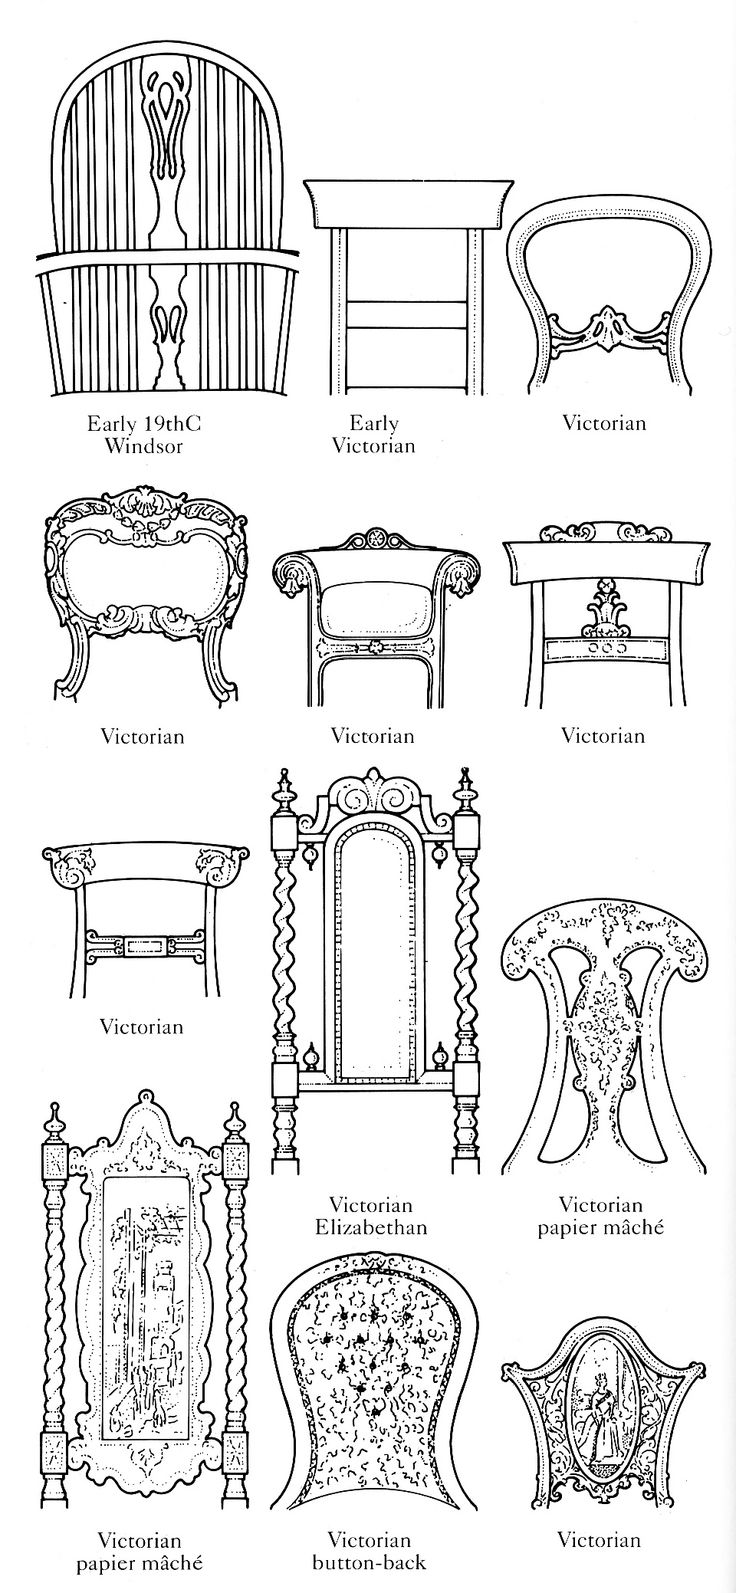 Queen anne chair history - Diagram Of British Chair Backs Early 19th Century To Victorian